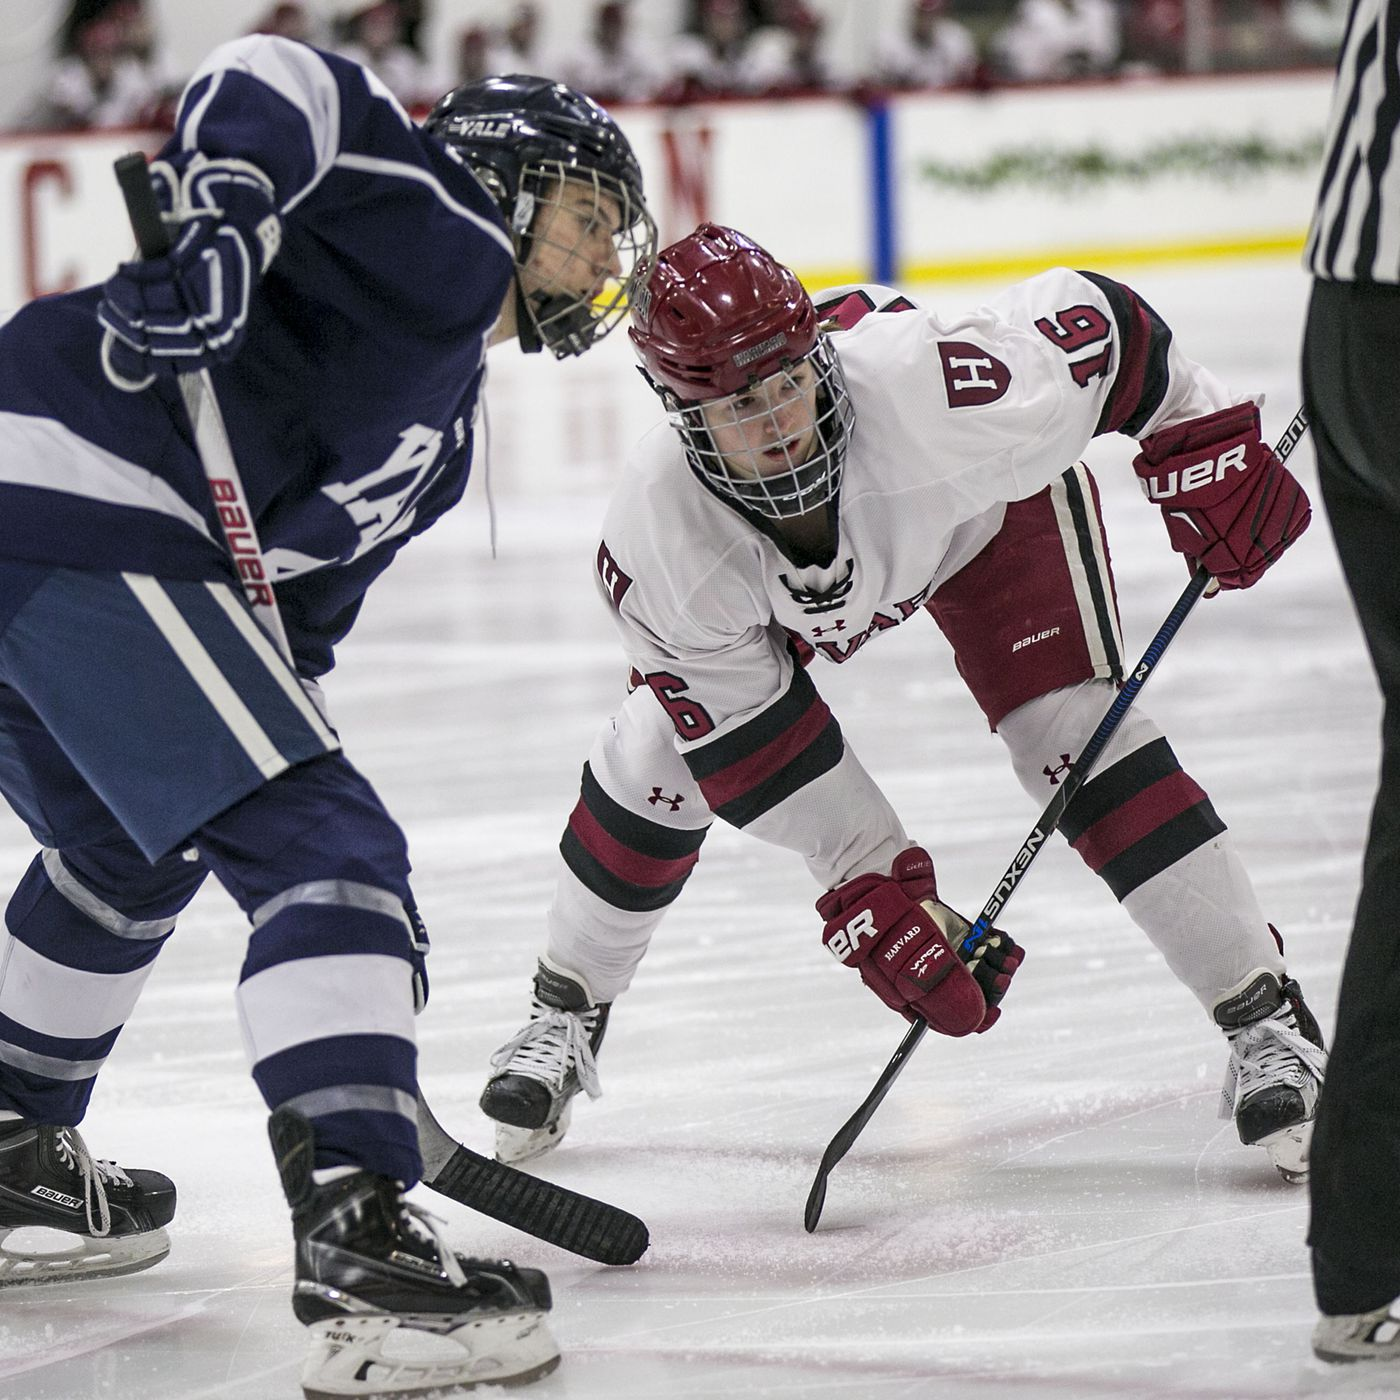 new style 7815f 14f9e NCAA Year in Review: Brown, Dartmouth, Union, Yale - The Ice ...